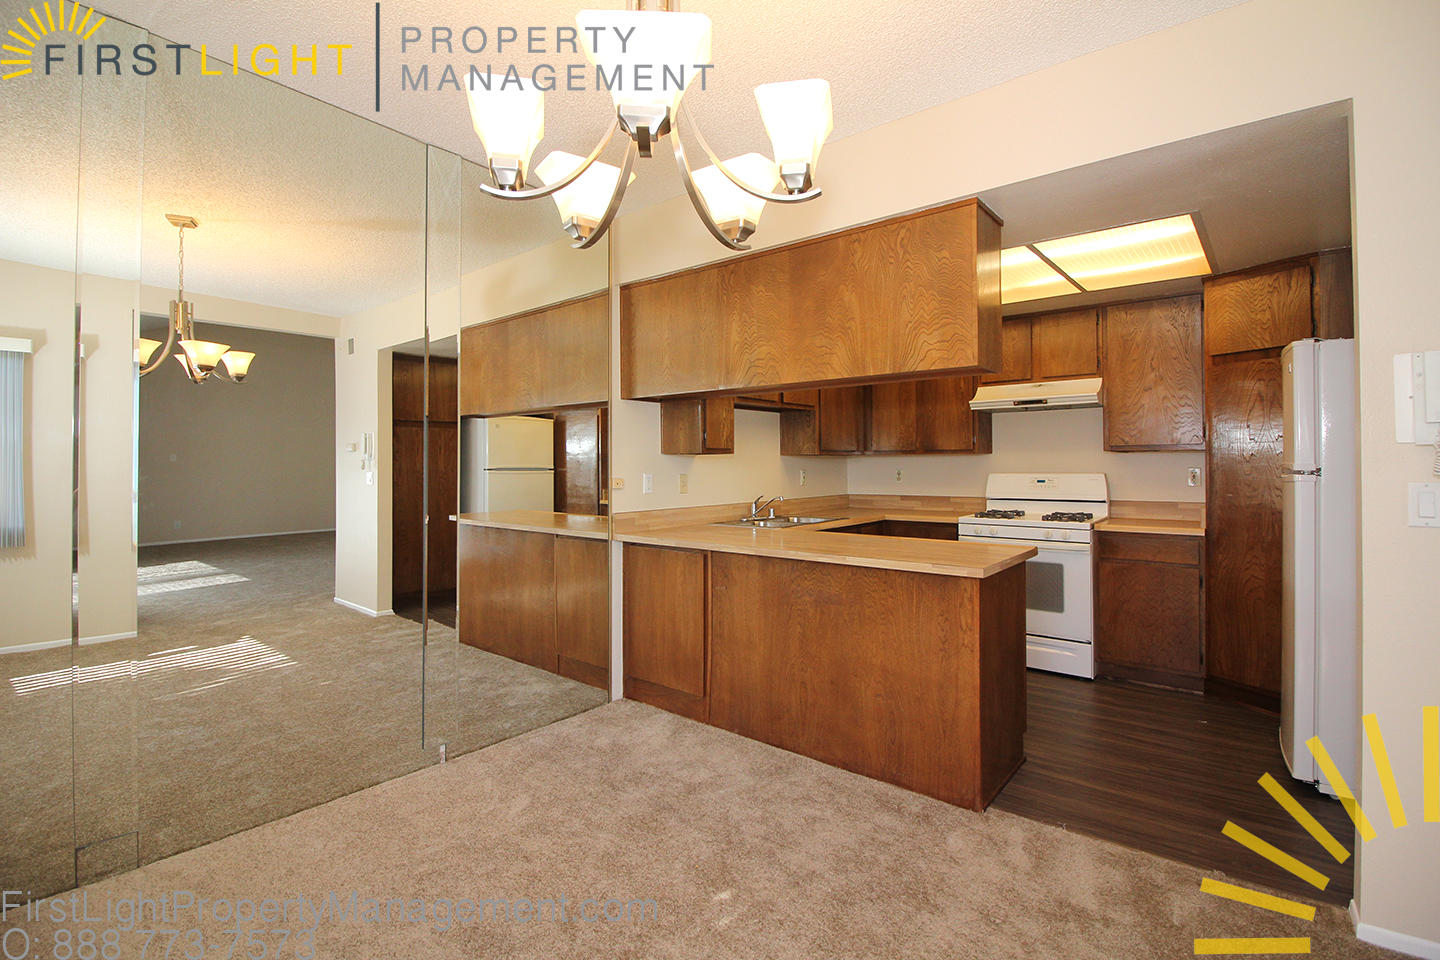 Superior Condo Under Management By First Light Property Management In Lomita, Ca